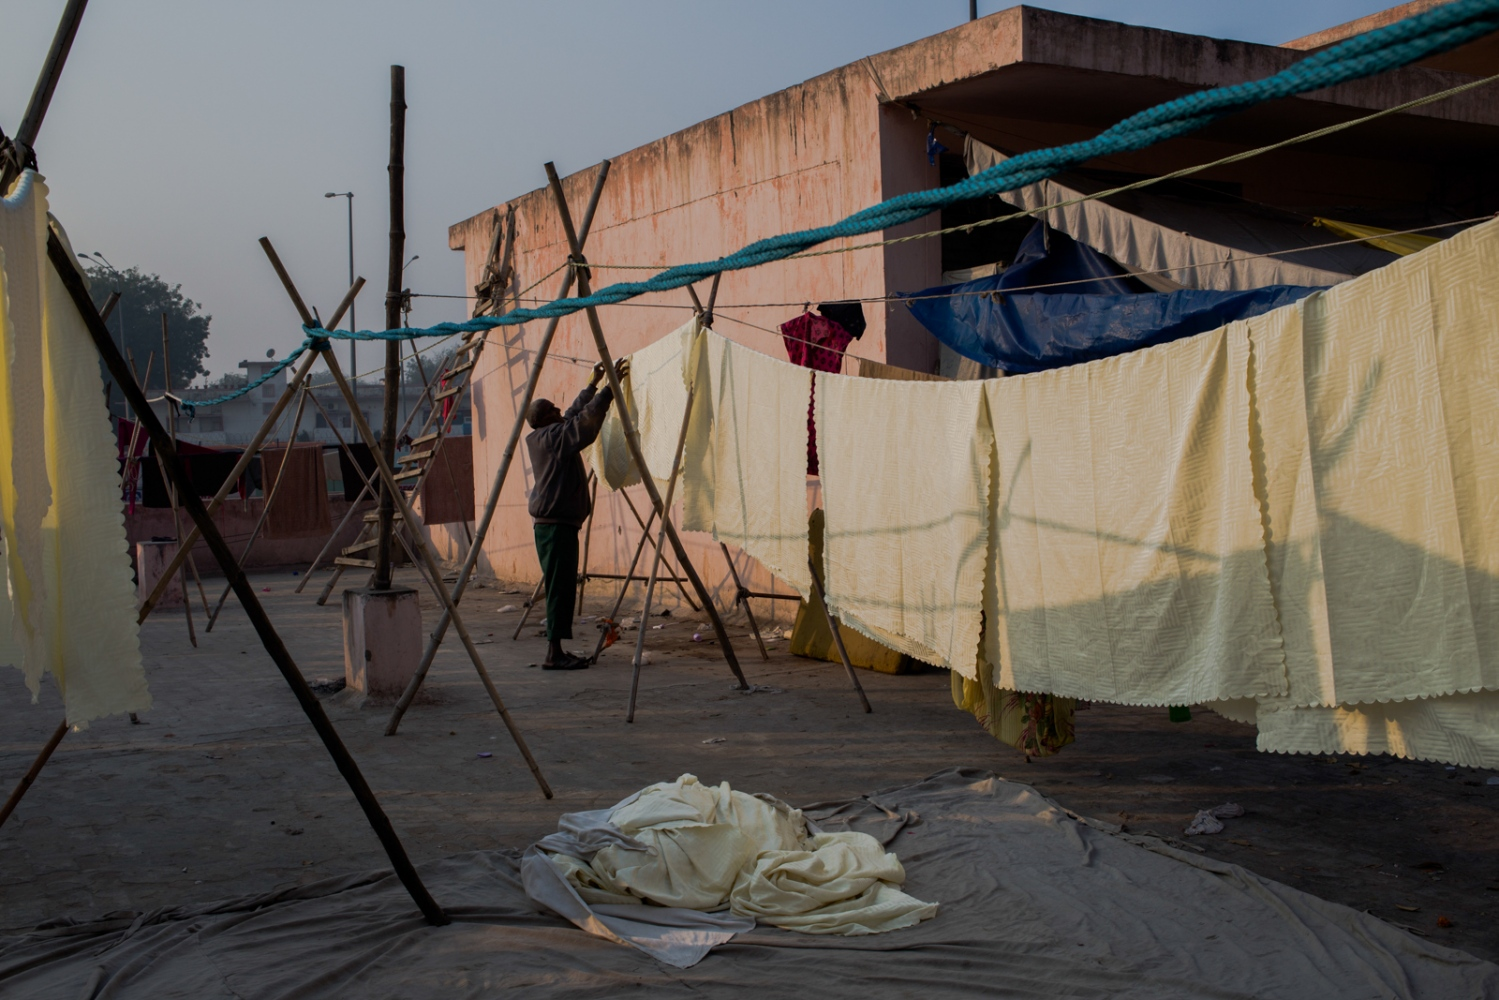 "Indian washerman Sahamuddin, 52, and who goes by one name, hangs sheets to dry before sharing chai with other workers at a dhobi ghat outdoor laundry in New Delhi on February 12, 2015. ""We don't make the same money every day, it changes with whatever work we get, but we only need five rupees for chapati (bread)."""